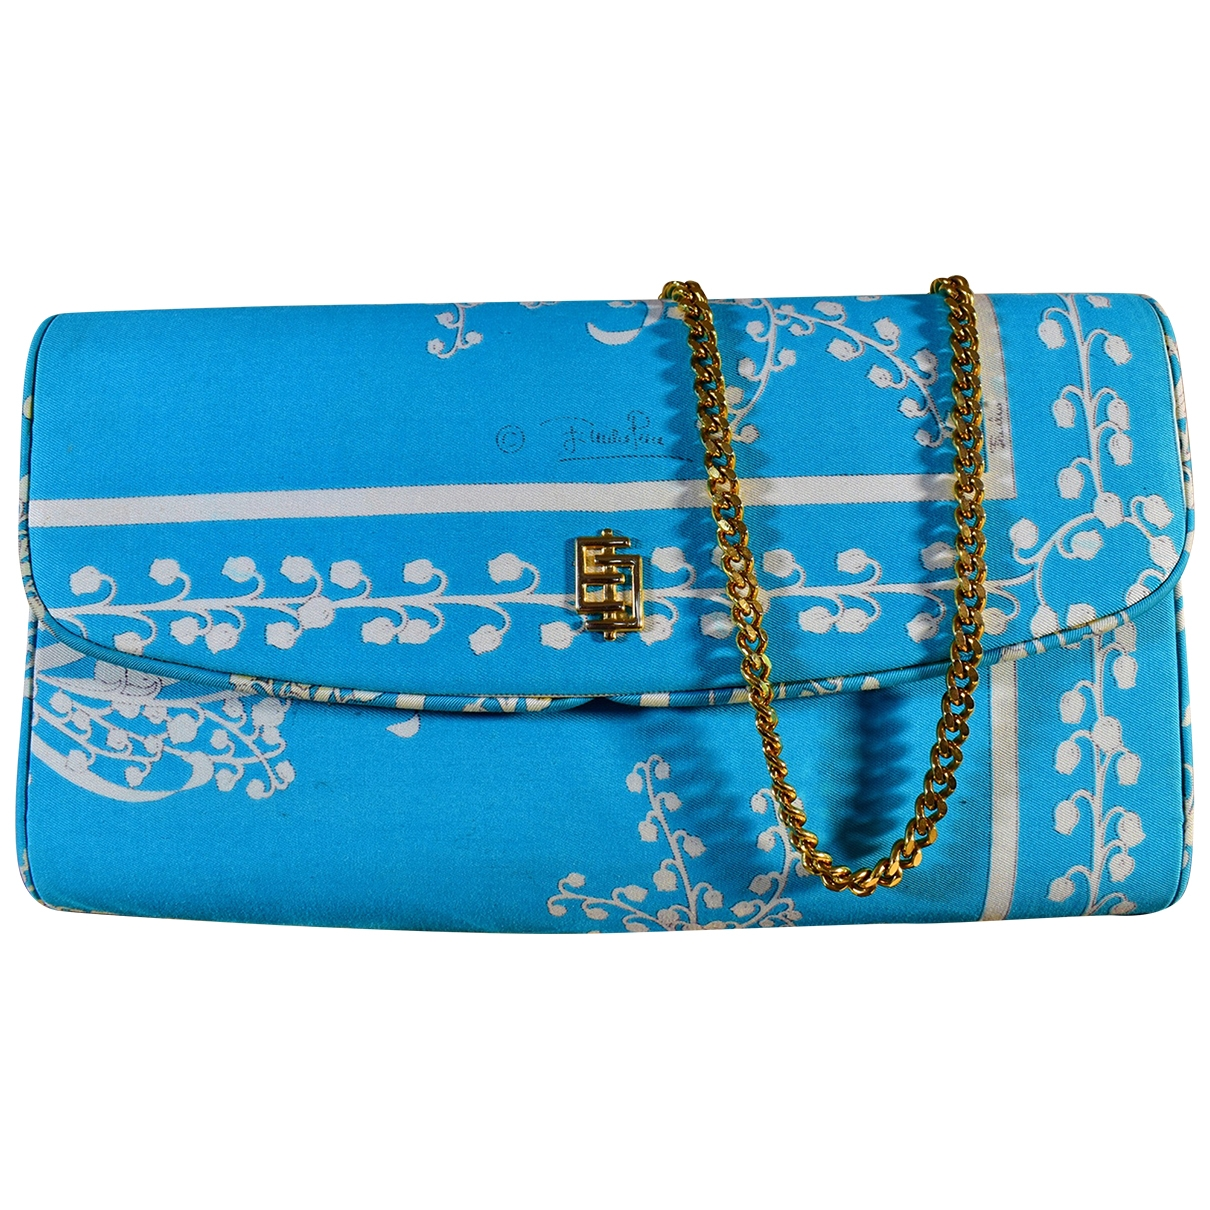 Emilio Pucci \N Blue Silk handbag for Women \N